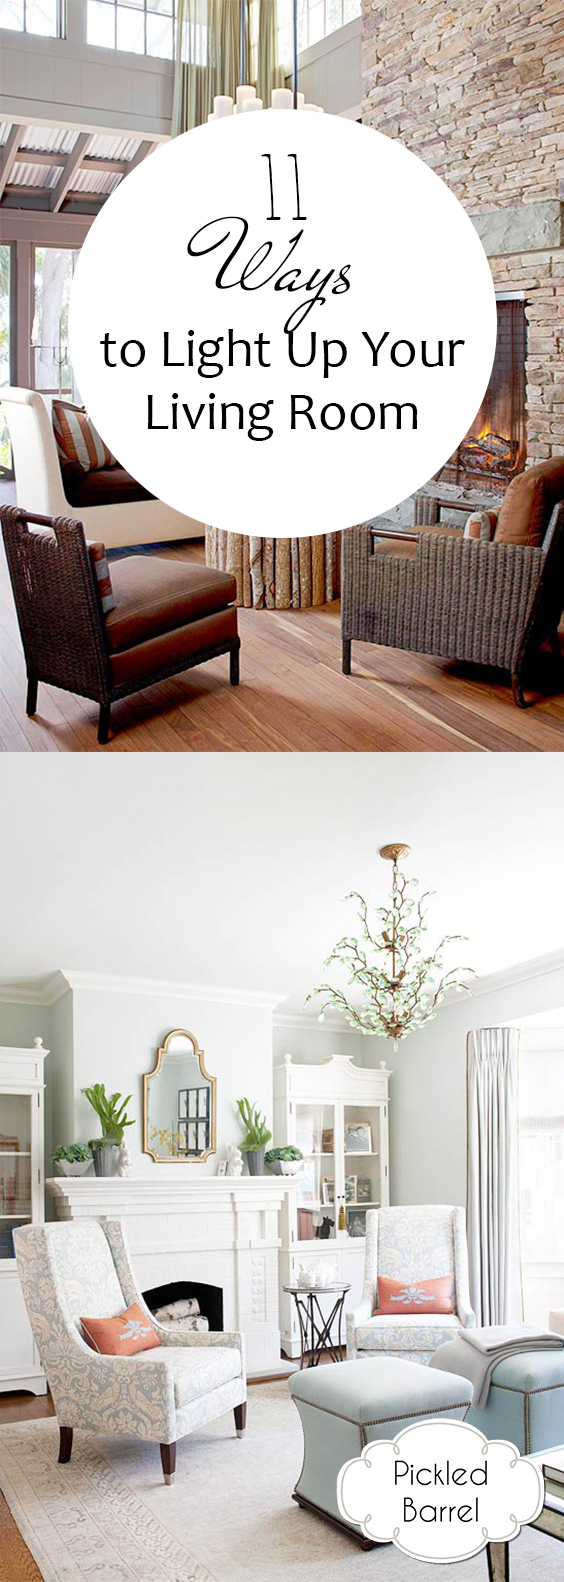 11 Ways to Light Up Your Living Room  Living Room, Living Room Lighting, How to Light Your Living Room, Living Room Decor, How to Decorate Your Living Room, Living Room lighting Ideas and Inspiration, Home Decor, Cheap Home Decor, Home Decor Tips.